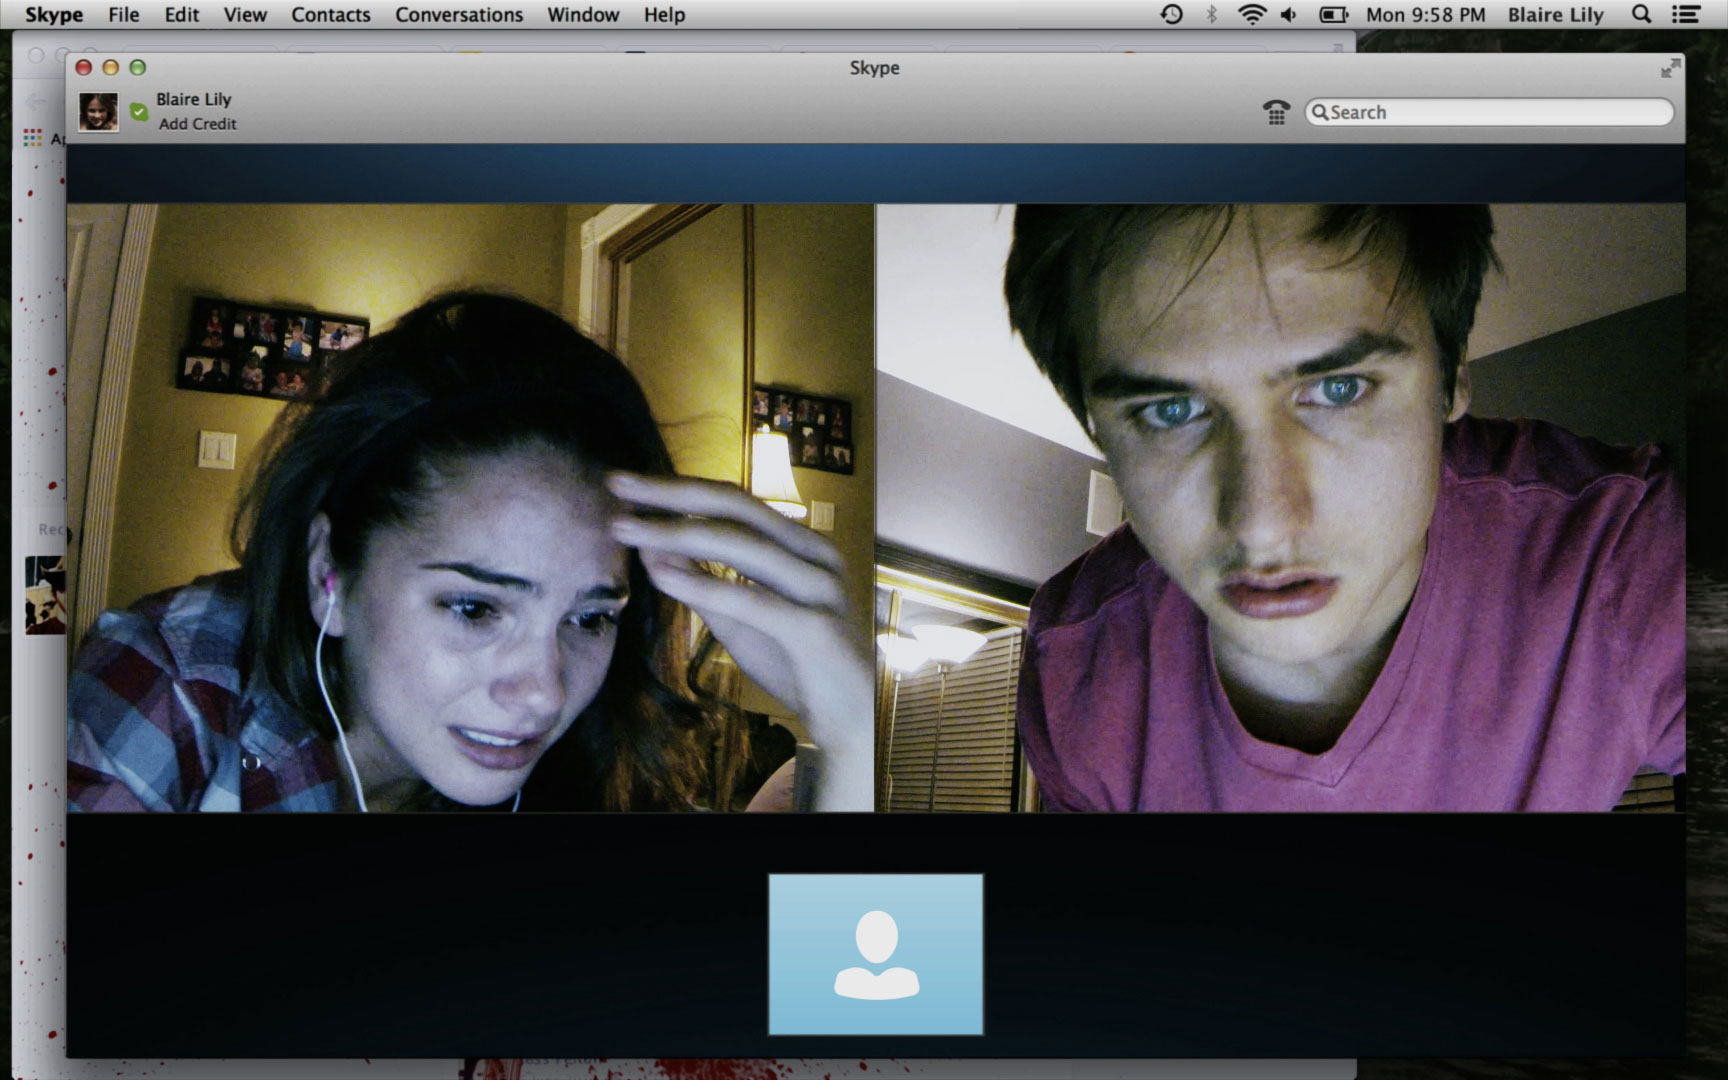 Universal's Horror Film 'Unfriended' Promoted with Facebook Chatbot